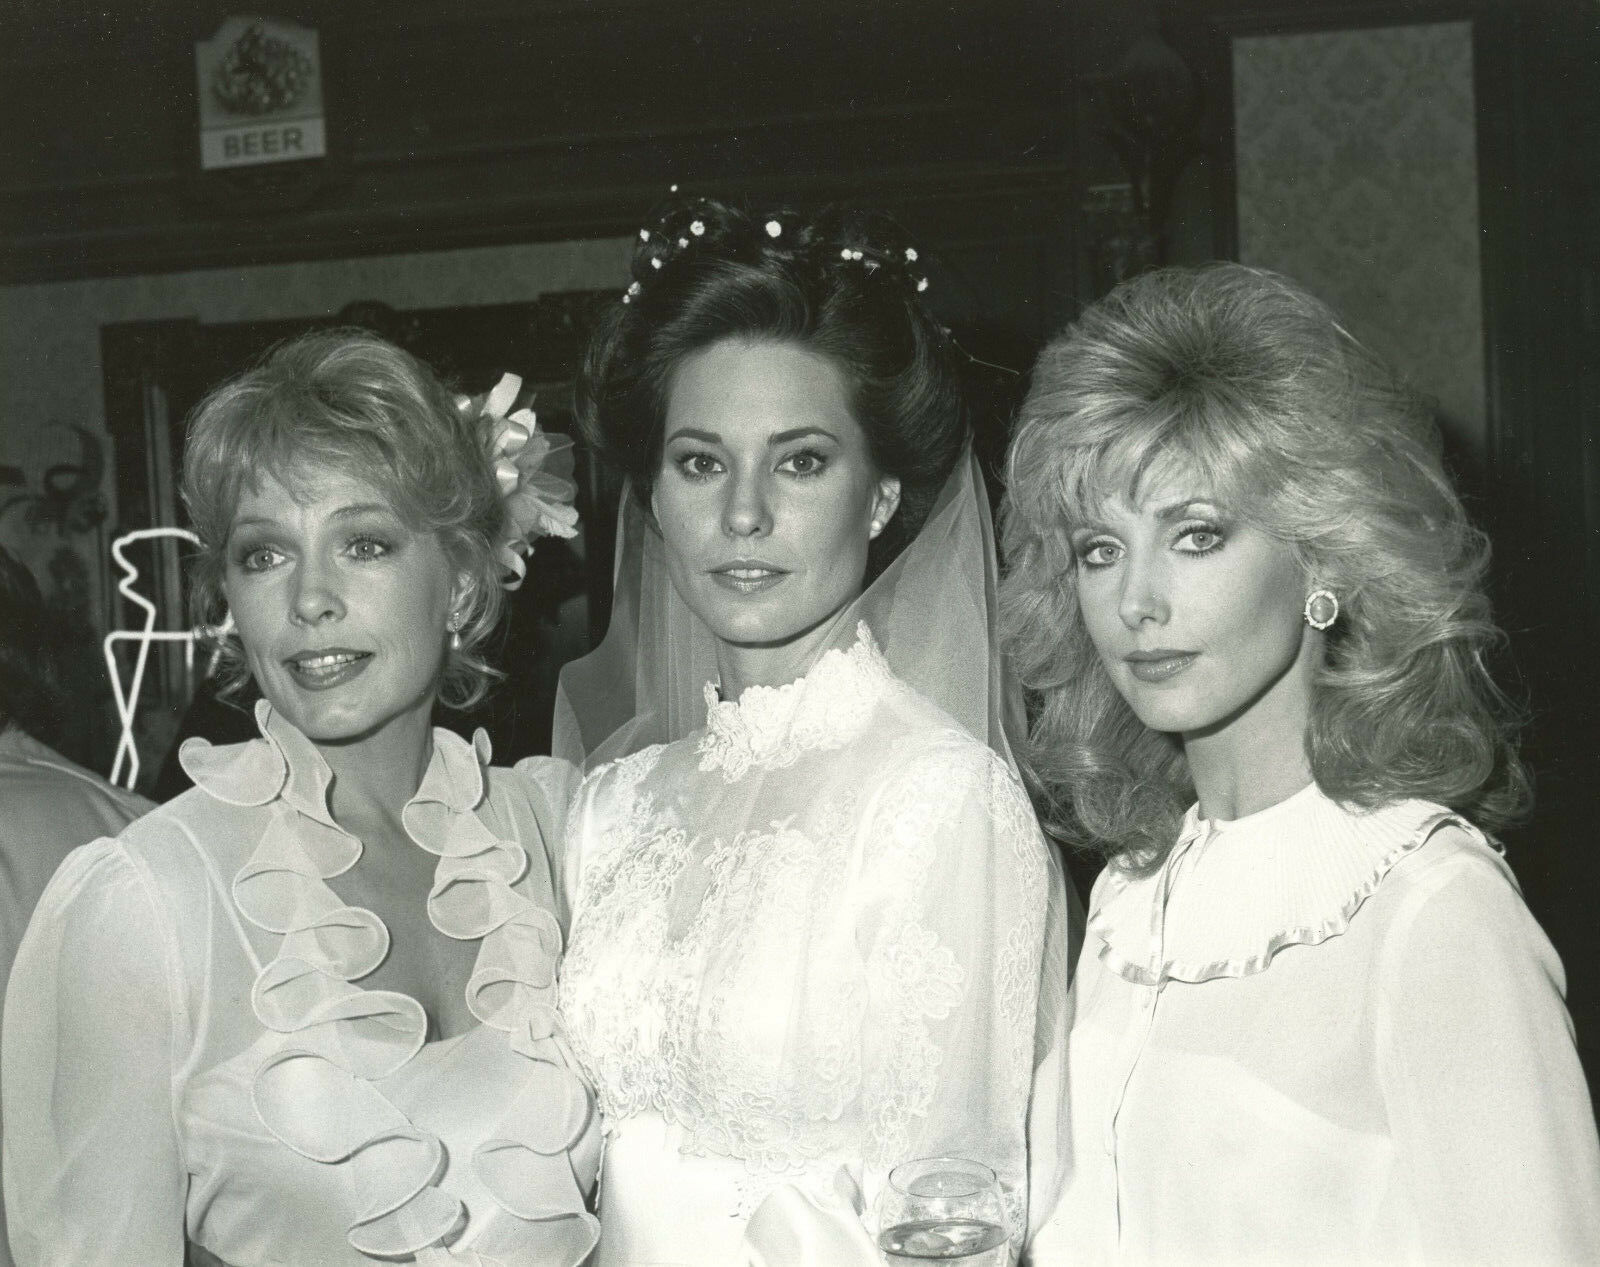 Morgan Fairchild, Stella Stevens, and Cristina Raines in Flamingo Road (1980)